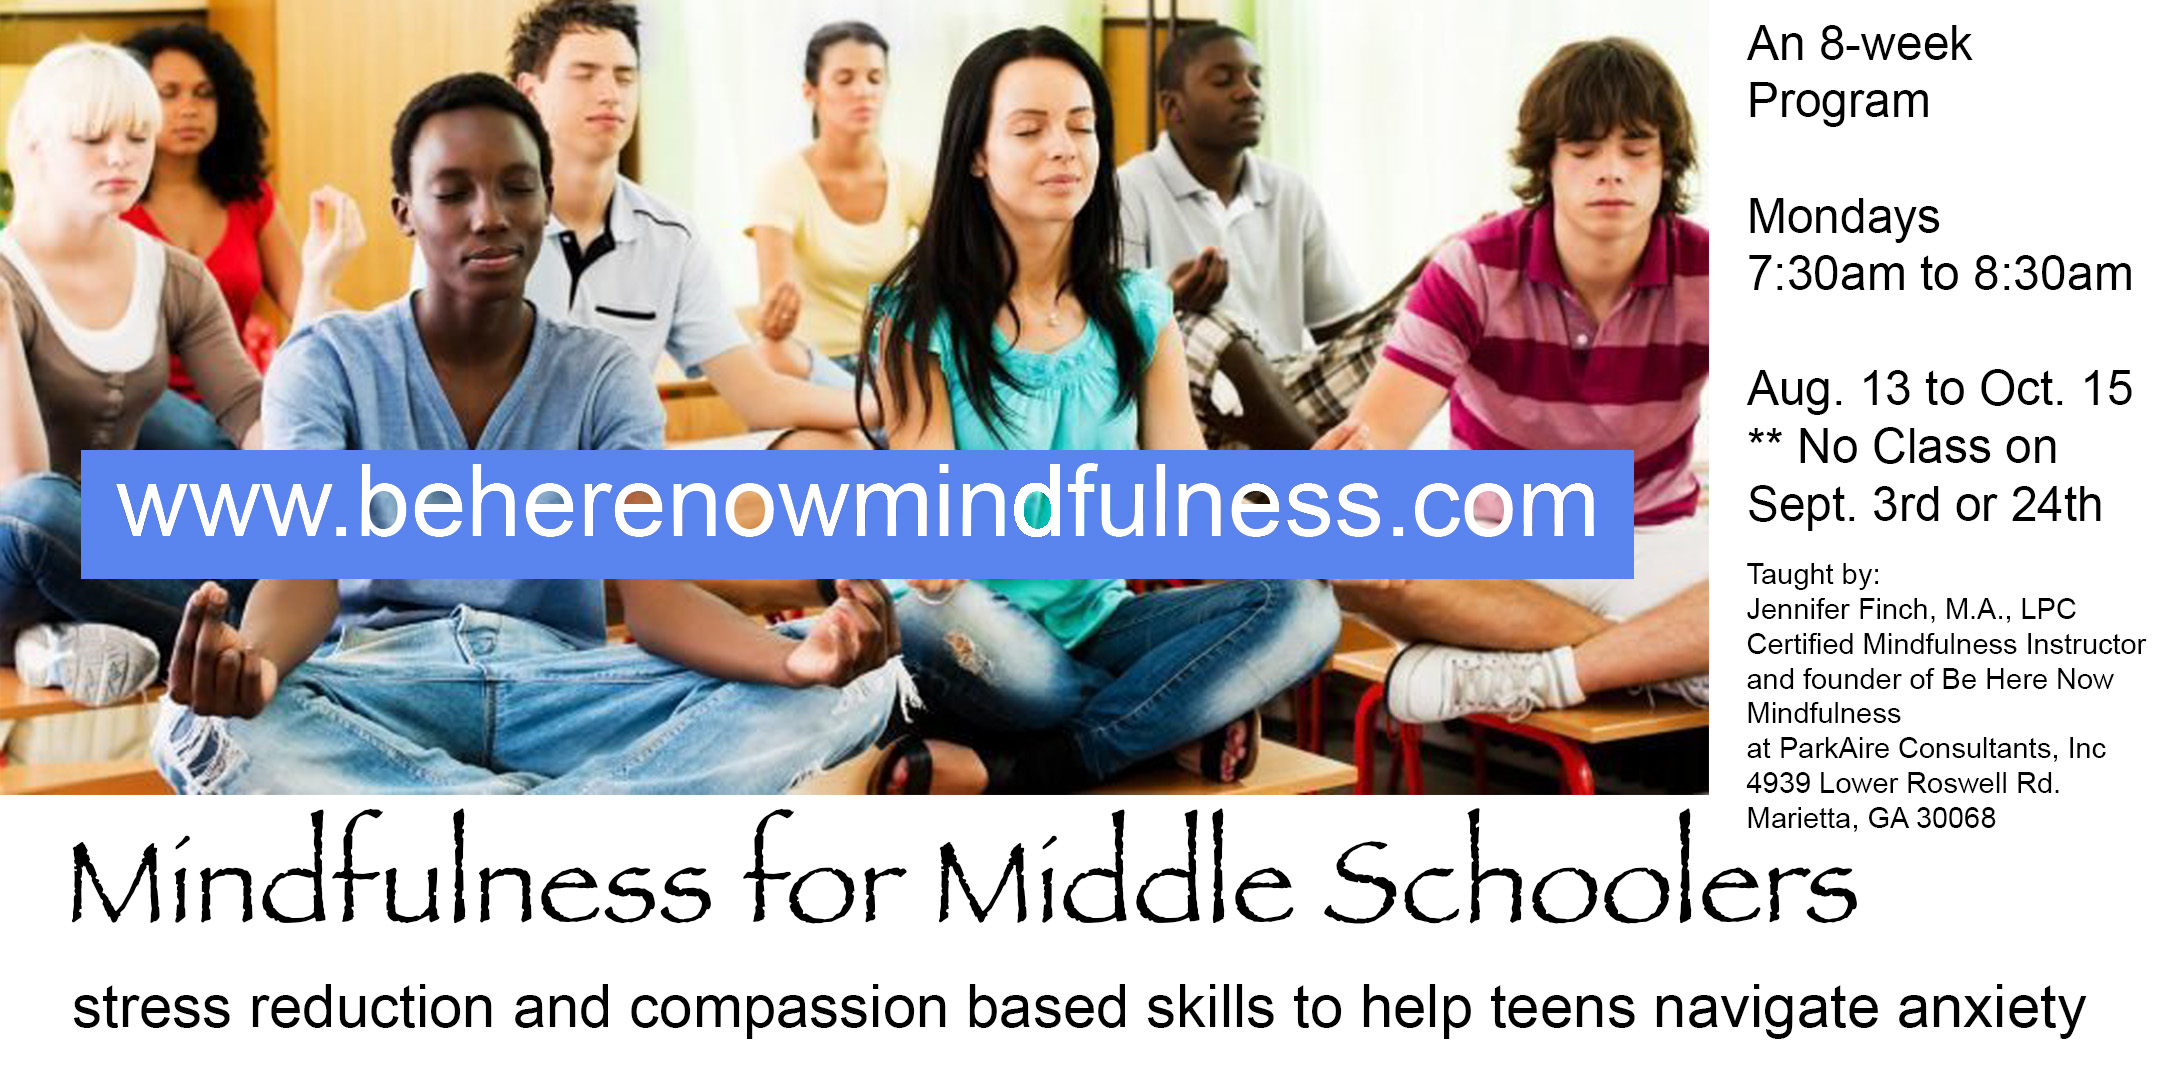 Mindfulness for Middle Schoolers **Before School - August 13th-October 15th Mondays7:30a.m. to 8:30 a.m.Where: ParkAire Consultants 4939 Lower Roswell Rd. Marietta, GA 30068Adolescents today need mindfulness more than ever. Give them the training that will enhance their wellbeing and help them flourish the way they were intended to in this world.There is a lot of research emerging about why mindfulness training in the morning is beneficial. It has the stickiness factor and sets kids off for their day on a calm, confident and focused path.This is an 8 week curriculum from the Mindfulness in Schools Project .b program. A researched based secularized mindfulness program for schools.To read more about why kids need mindfulness and about the .b curriculum click here: